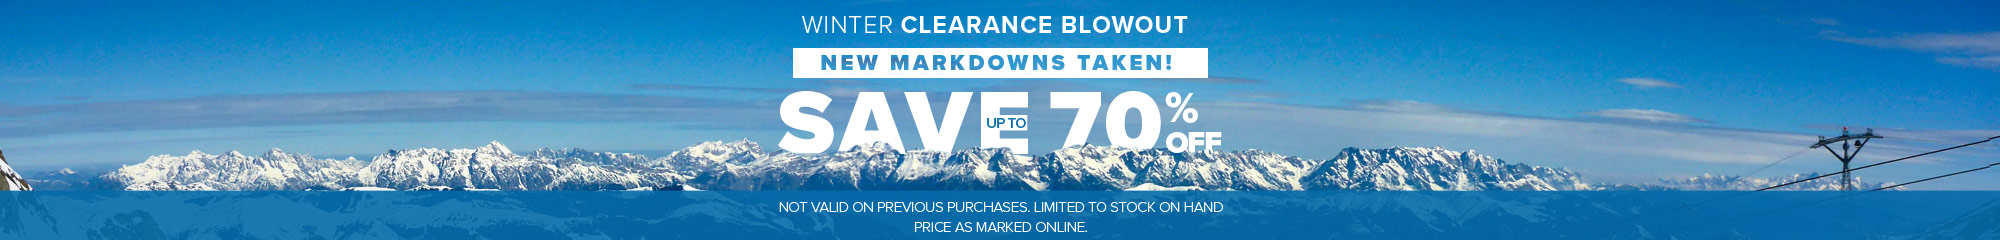 Winter Clearance Blowout. New Markdowns Taken Save up to 70%.